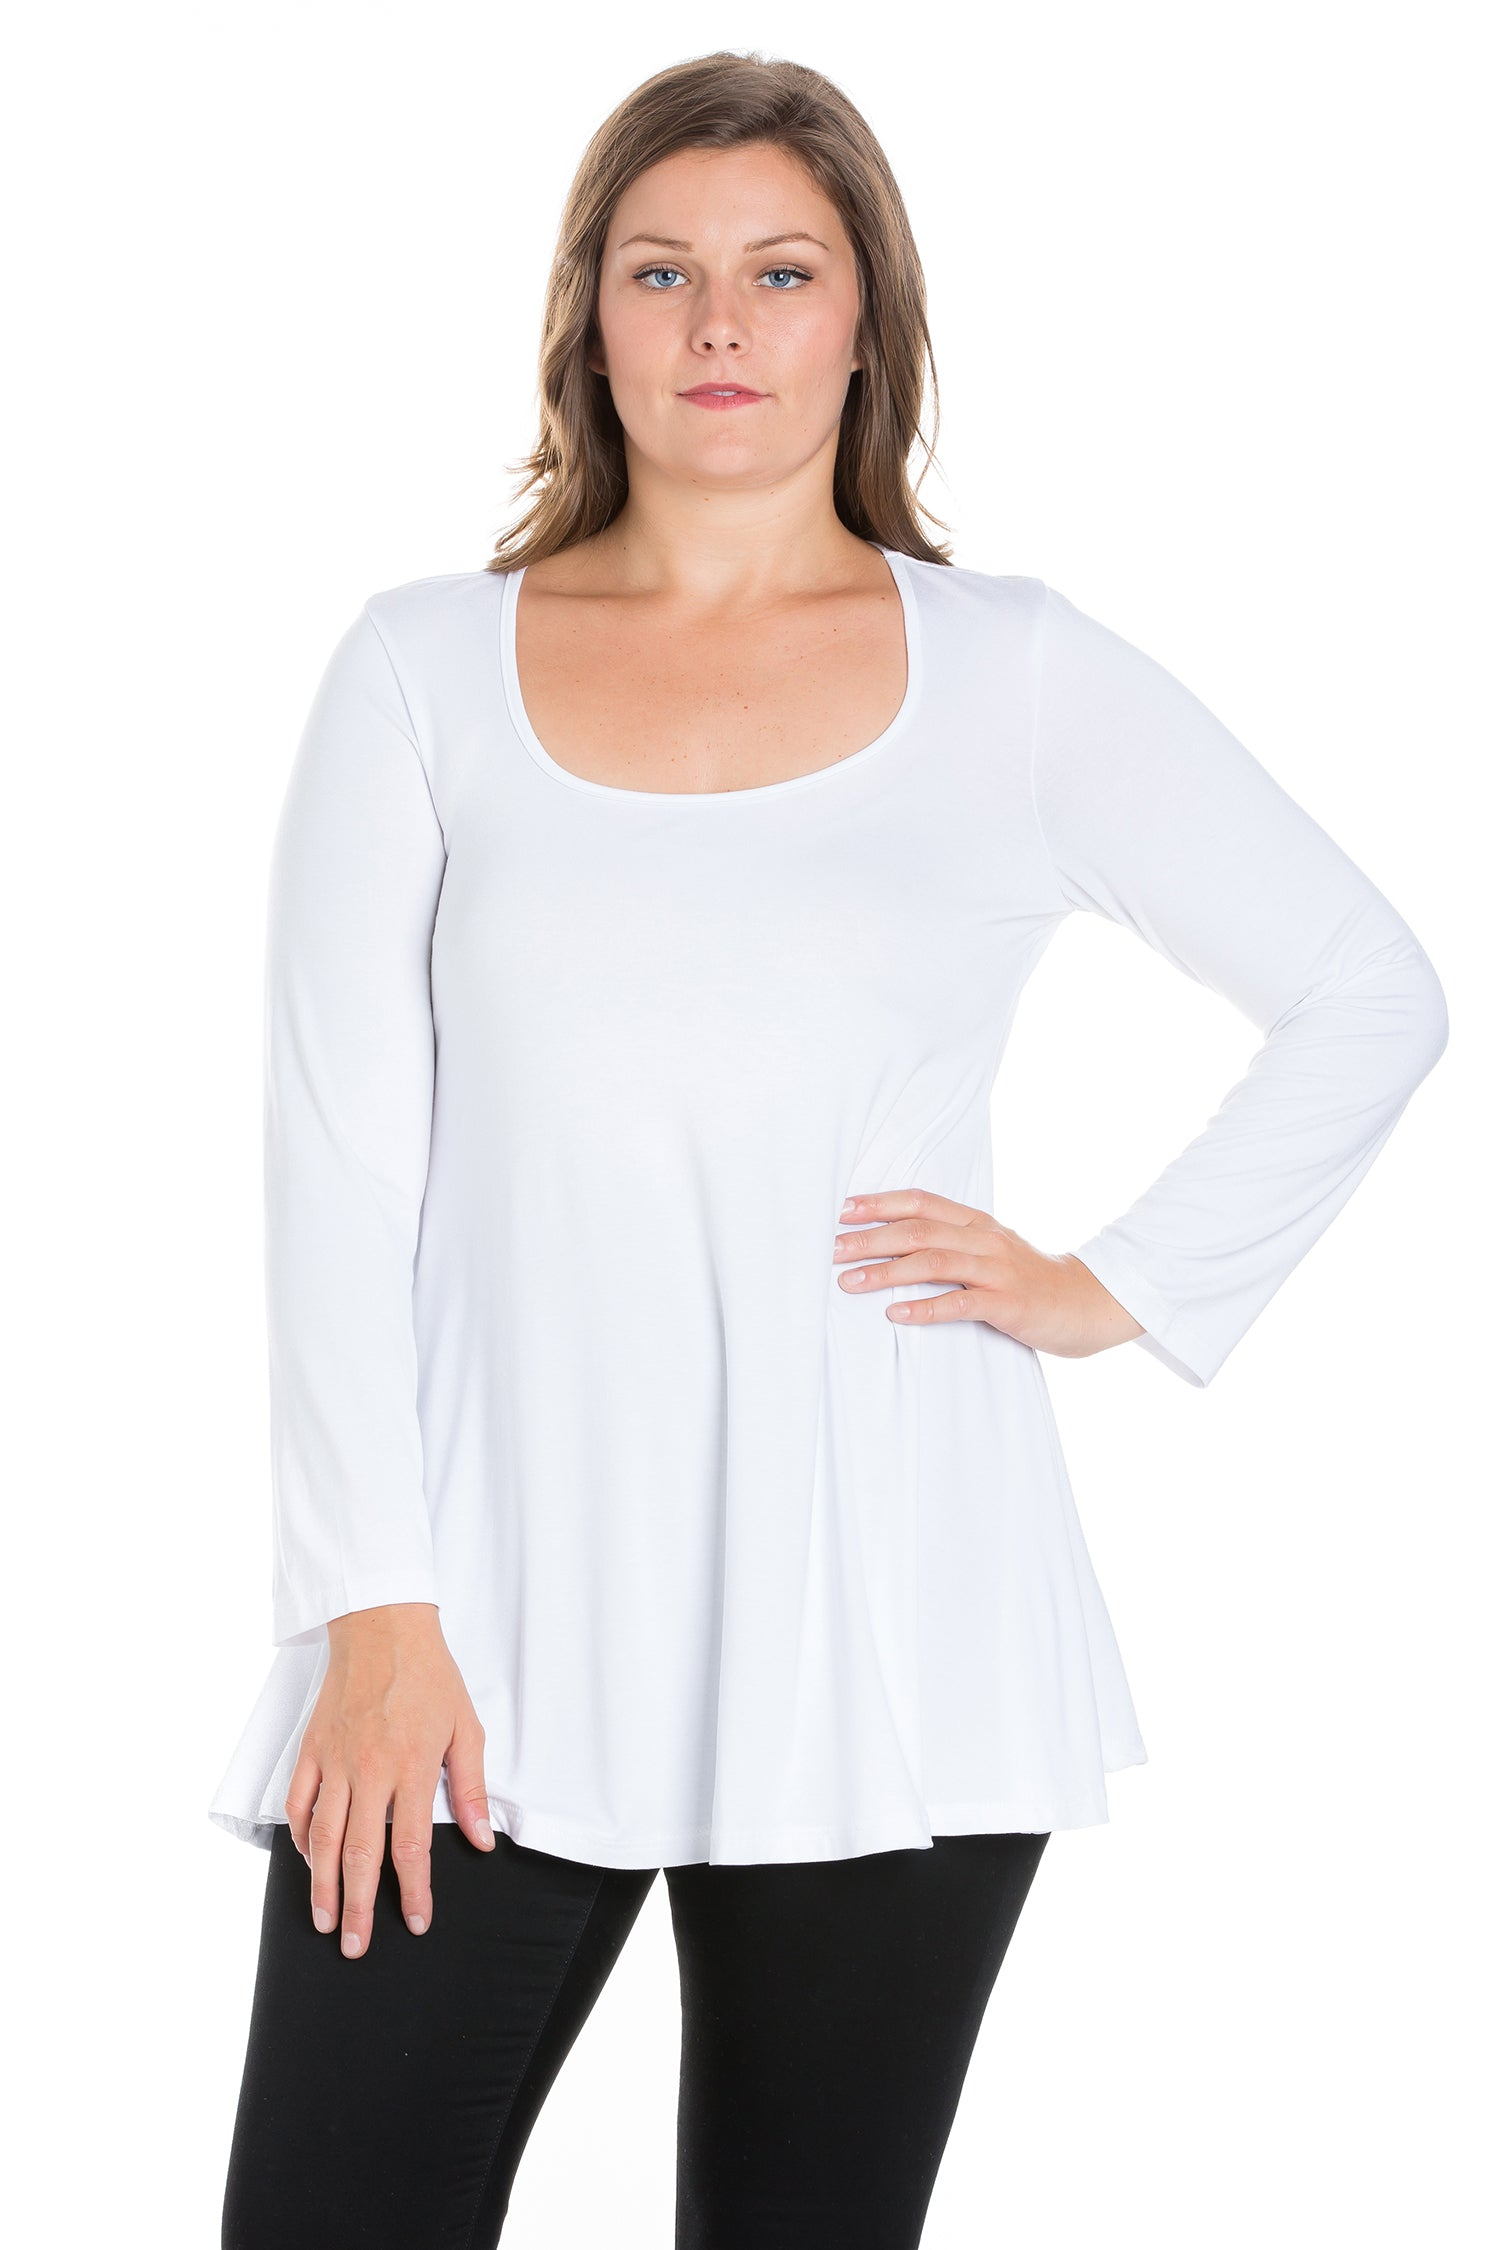 24seven Comfort Apparel Long Sleeve Swing Plus Size Tunic Top-TOPS-24Seven Comfort Apparel-WHITE-1X-24/7 Comfort Apparel